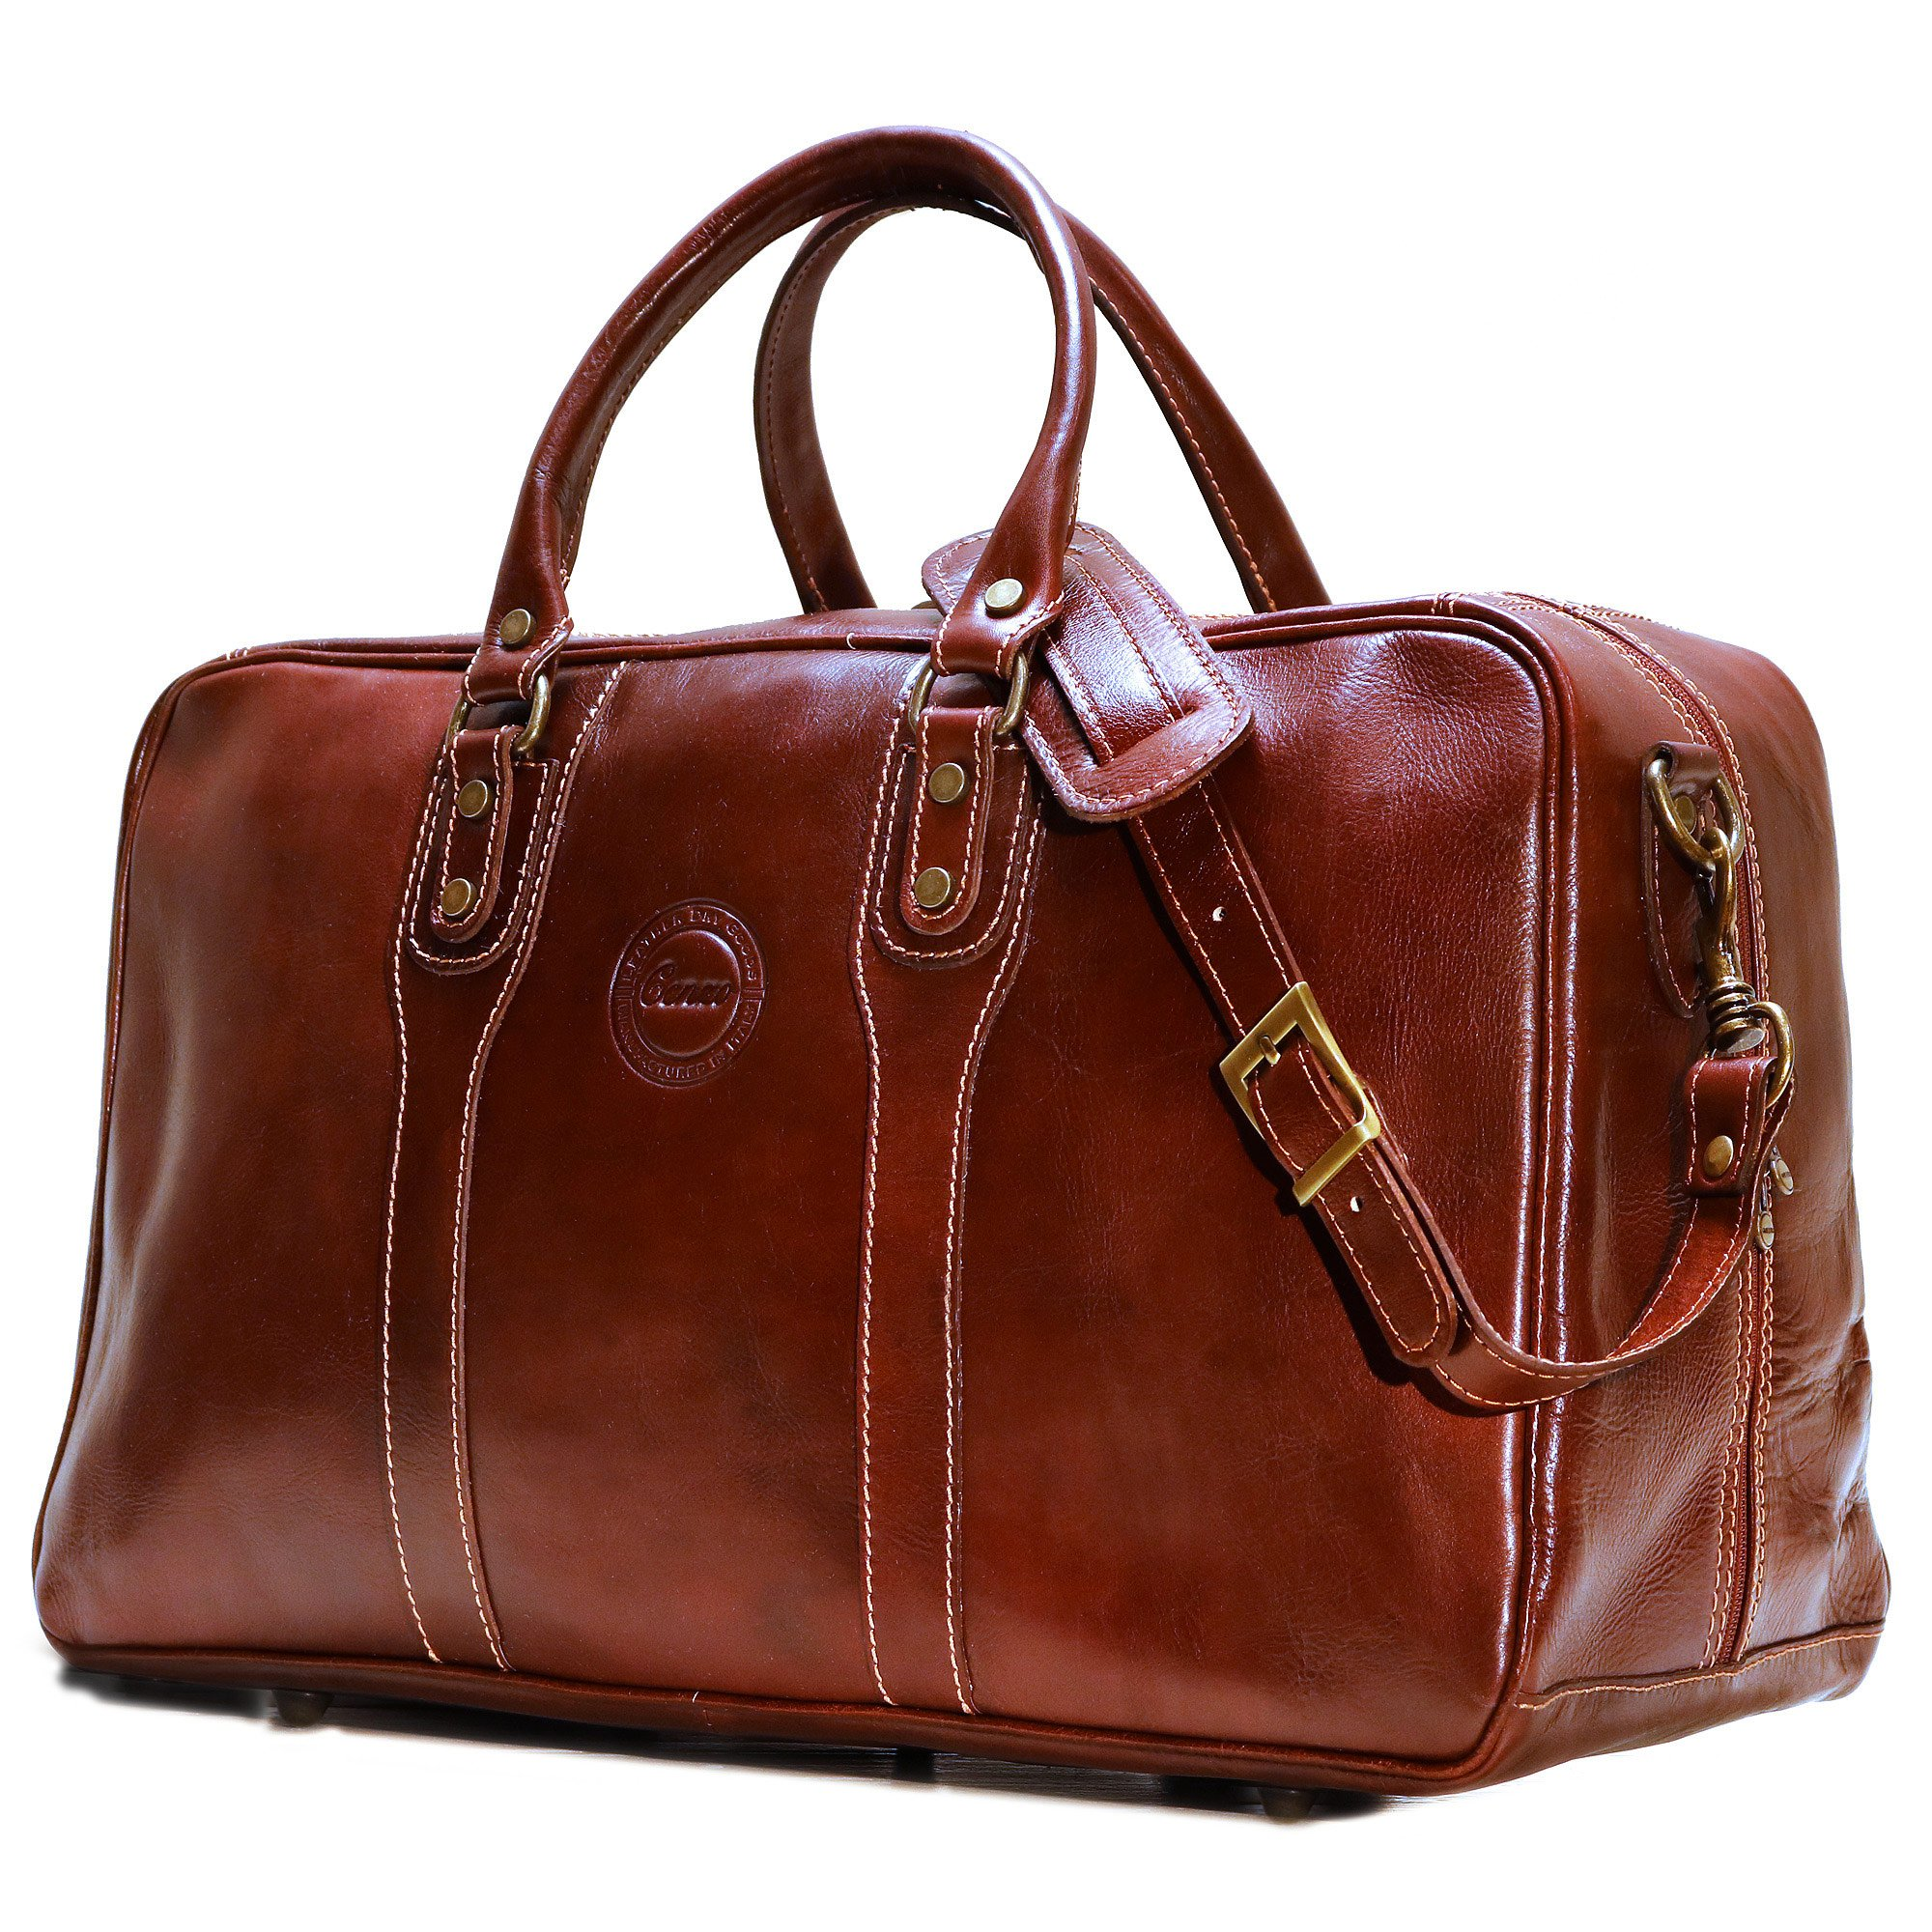 Cenzo Trunk Duffle Vecchio Brown Italian Leather Weekender Travel Bag by Cenzo